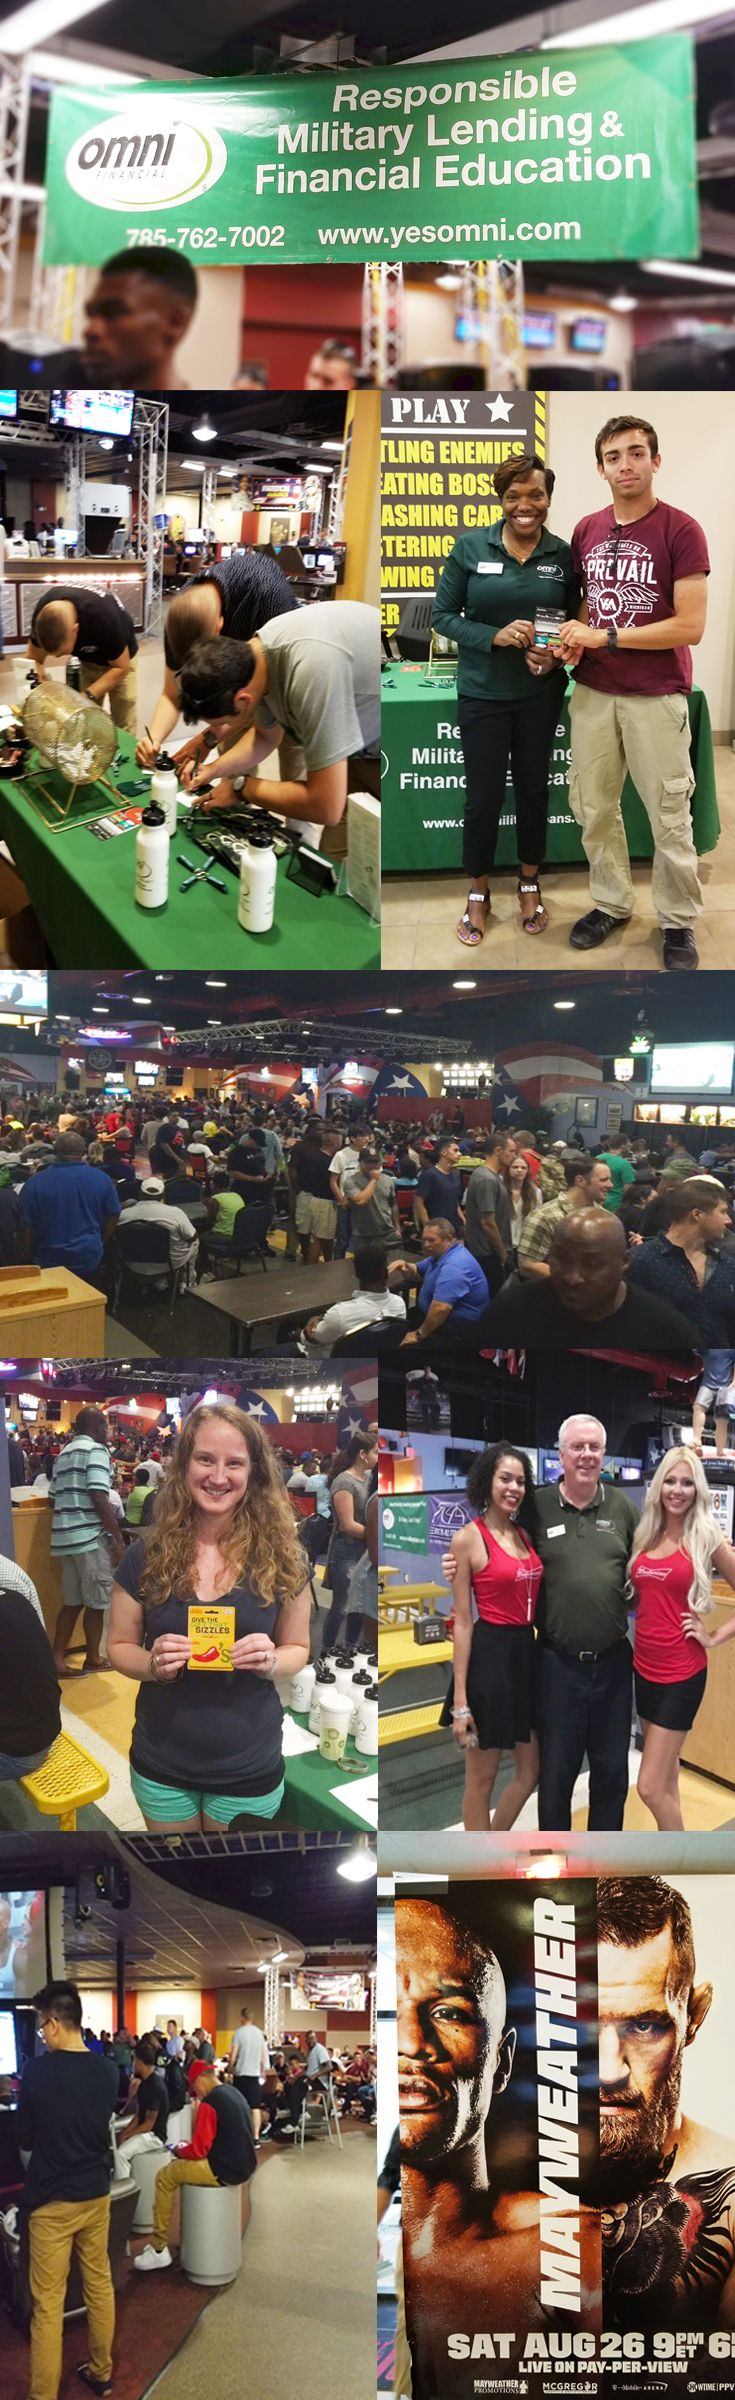 Check out the pictures from the Mayweather vs. McGregor fight viewing we sponsored for the troops stationed at Fort Riley and Fort Bragg.